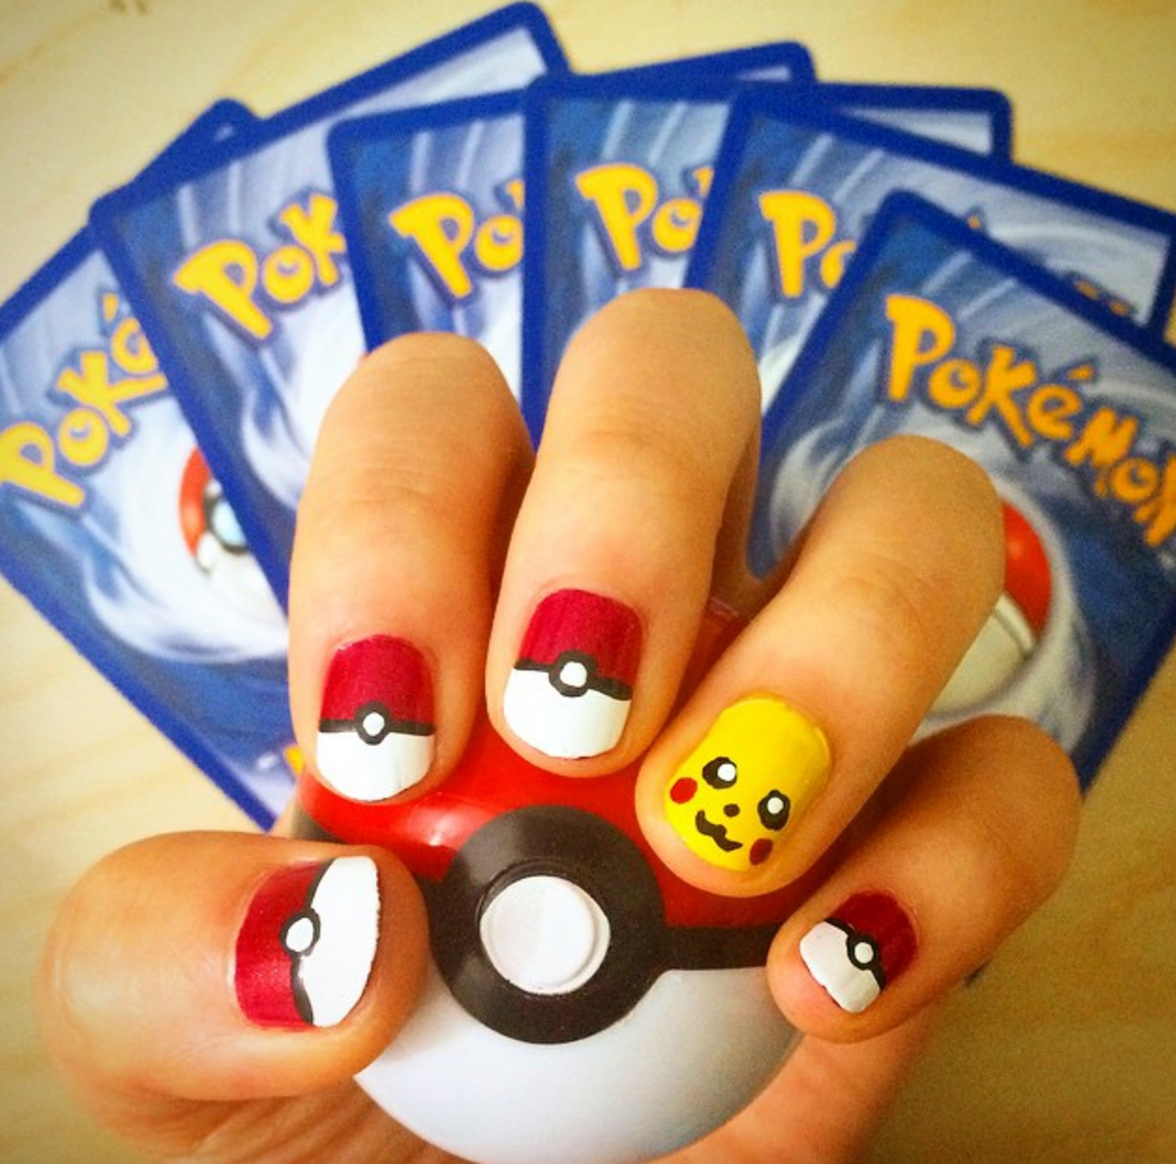 These Pokémon nail art designs make us forget all about wanting to catch  'em all - These Pokémon Nail Art Designs Make Us Forget All About Wanting To